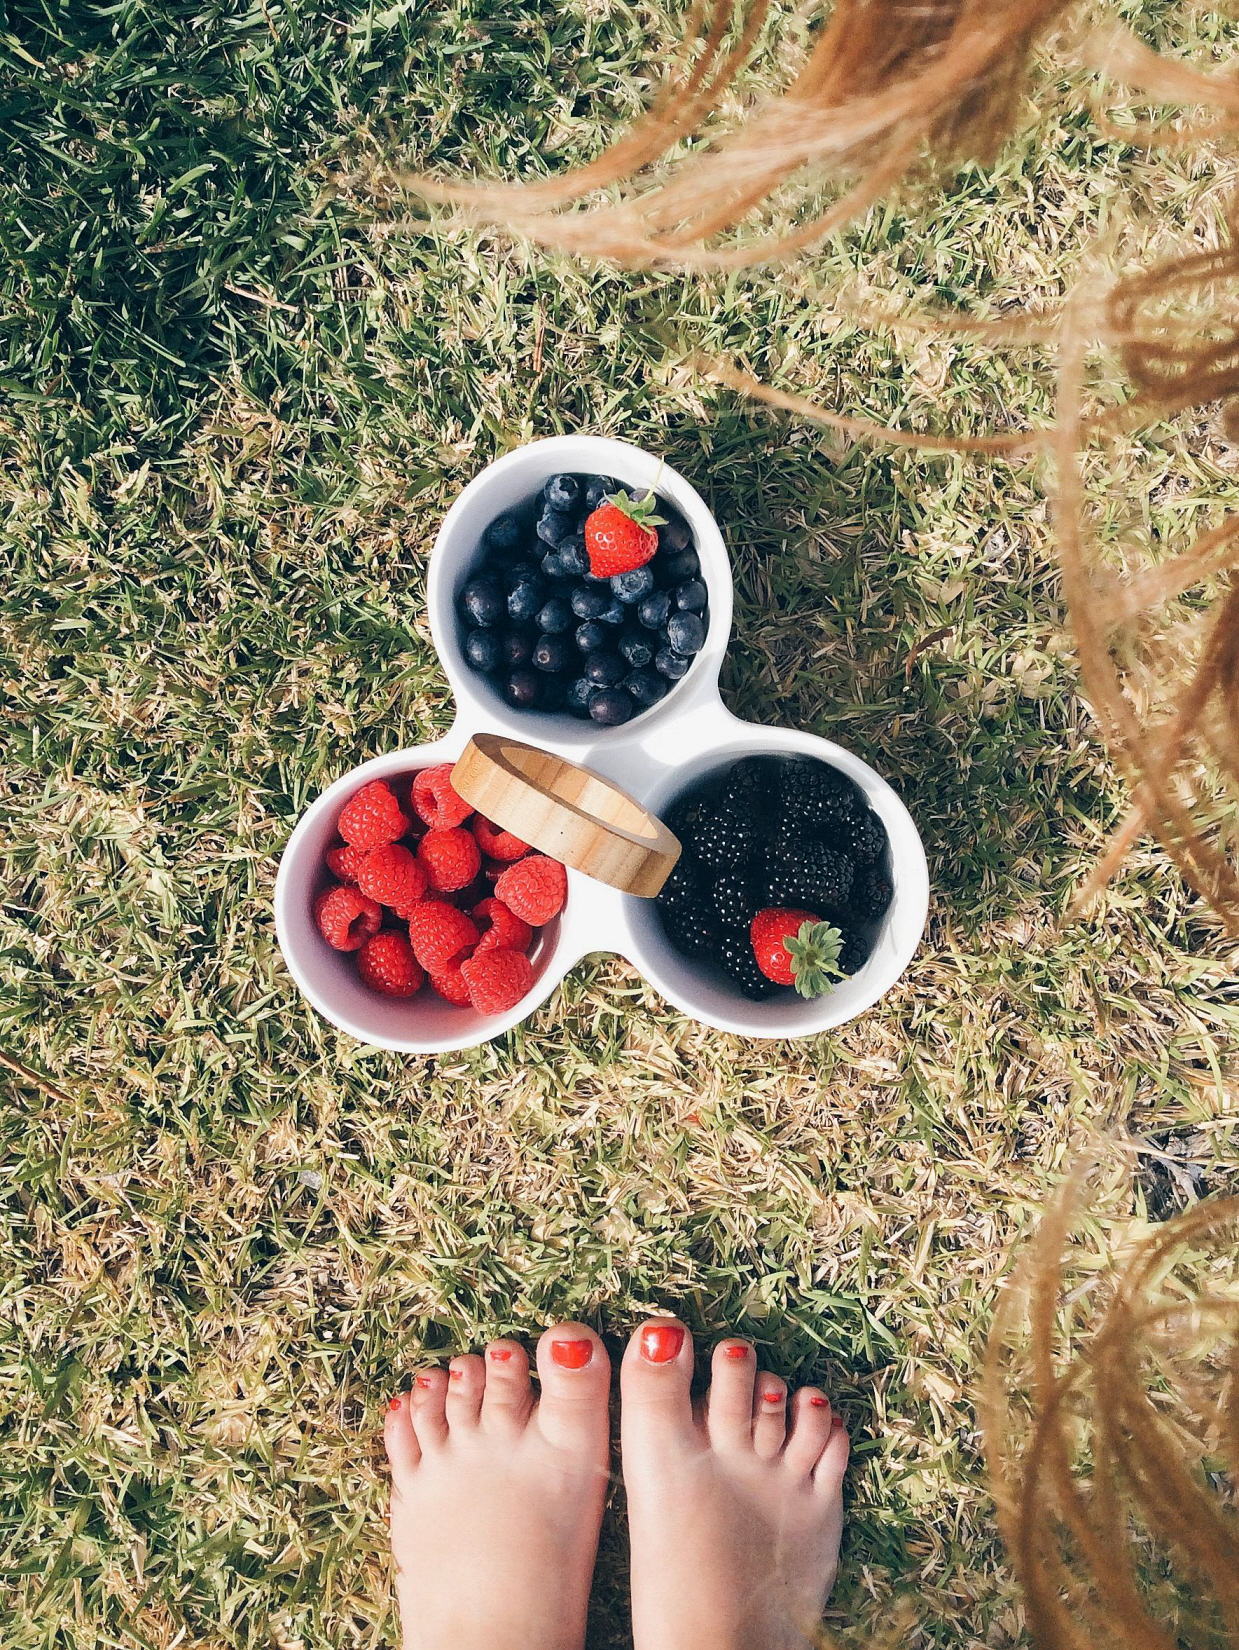 Female feet and basket full of berries